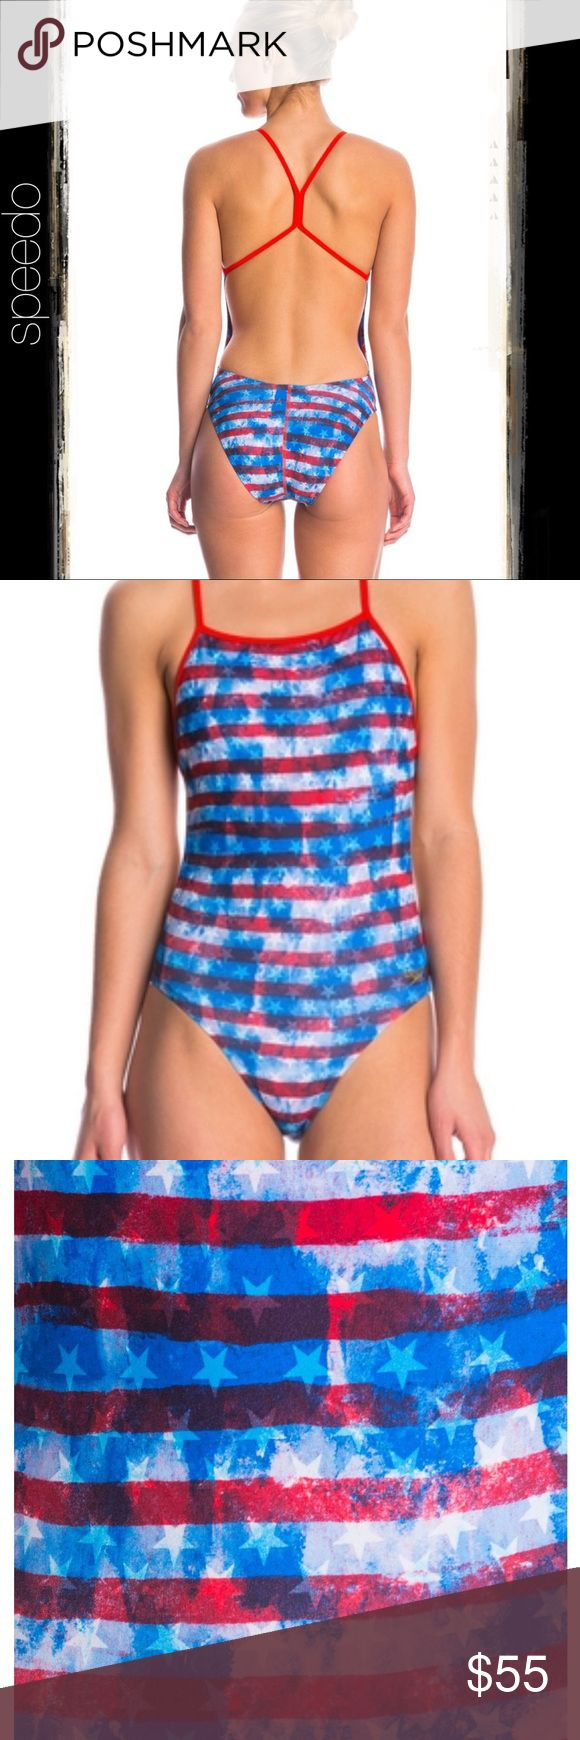 Speedo Red White and Blue One Piece SZ 34/8 (NWT) One piece swimsuit. Allover patriotic print with solid straps and binding. One Back:       - Open, low back for maximum, natural flexibility.       - Thin, streamlined straps for a comfortable fit. Speedo logo at wearer's left hip.  Fabric: Speedo's longest lasting suit, now 10% lighter. All the same benefits of Endurance+. Chlorine-resistant durability. Four-way stretch comfort. Resists bagging, fading, sagging, and snagging. 51% PBT, 49%…